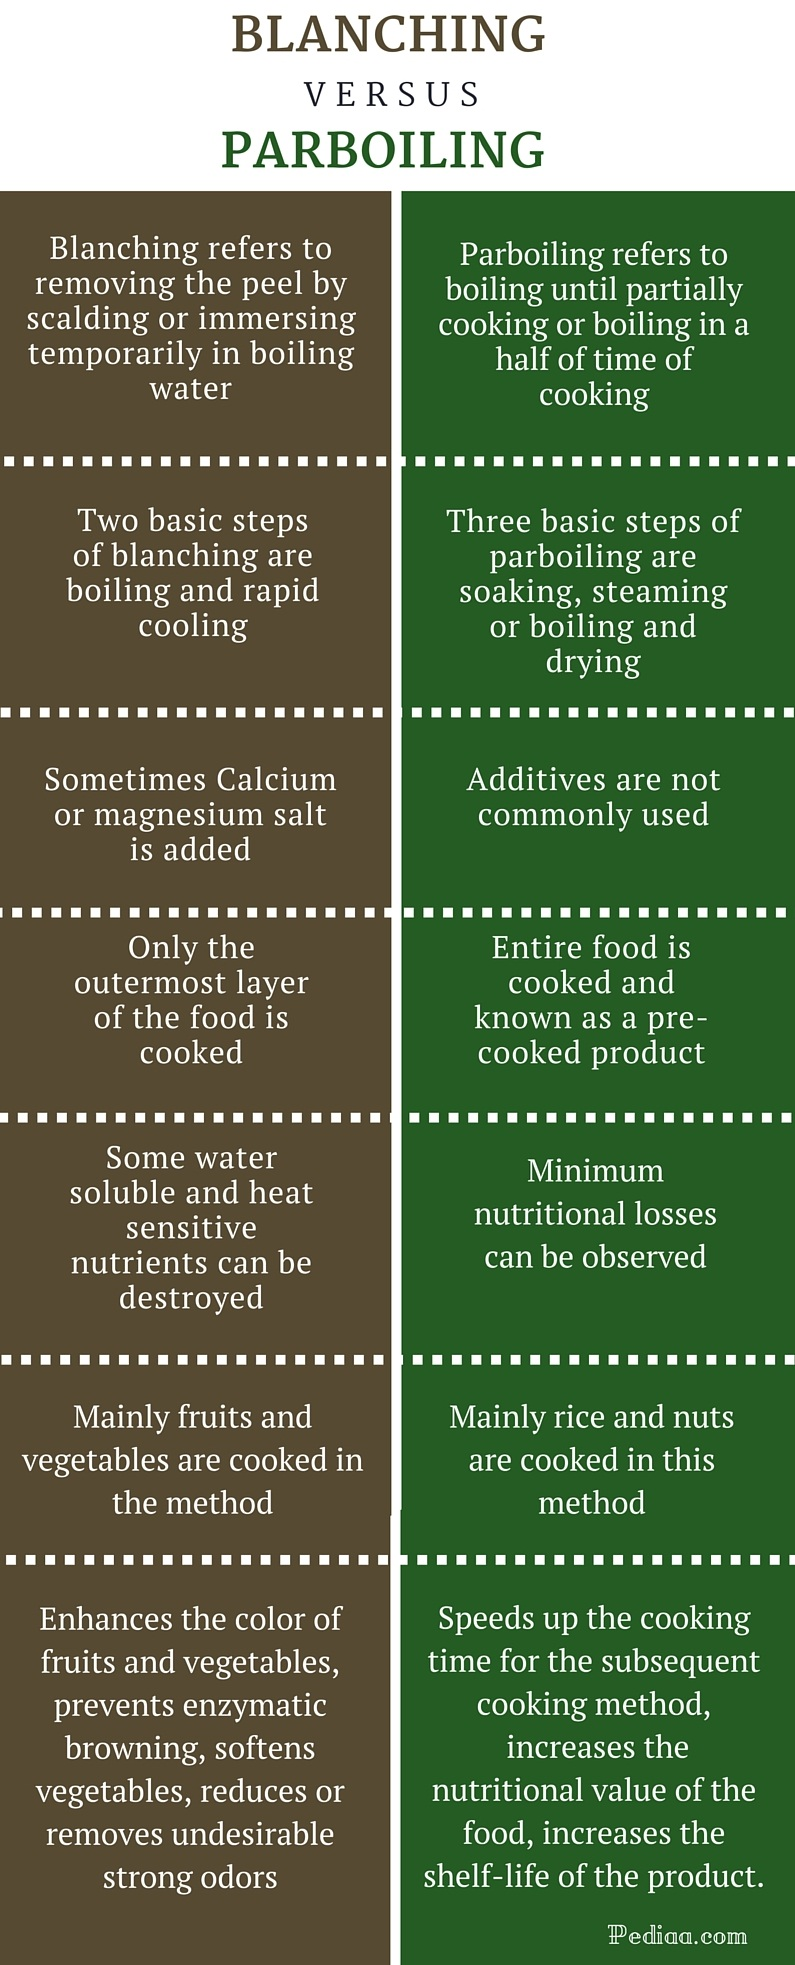 Difference Between Blanching and Parboiling -infographic